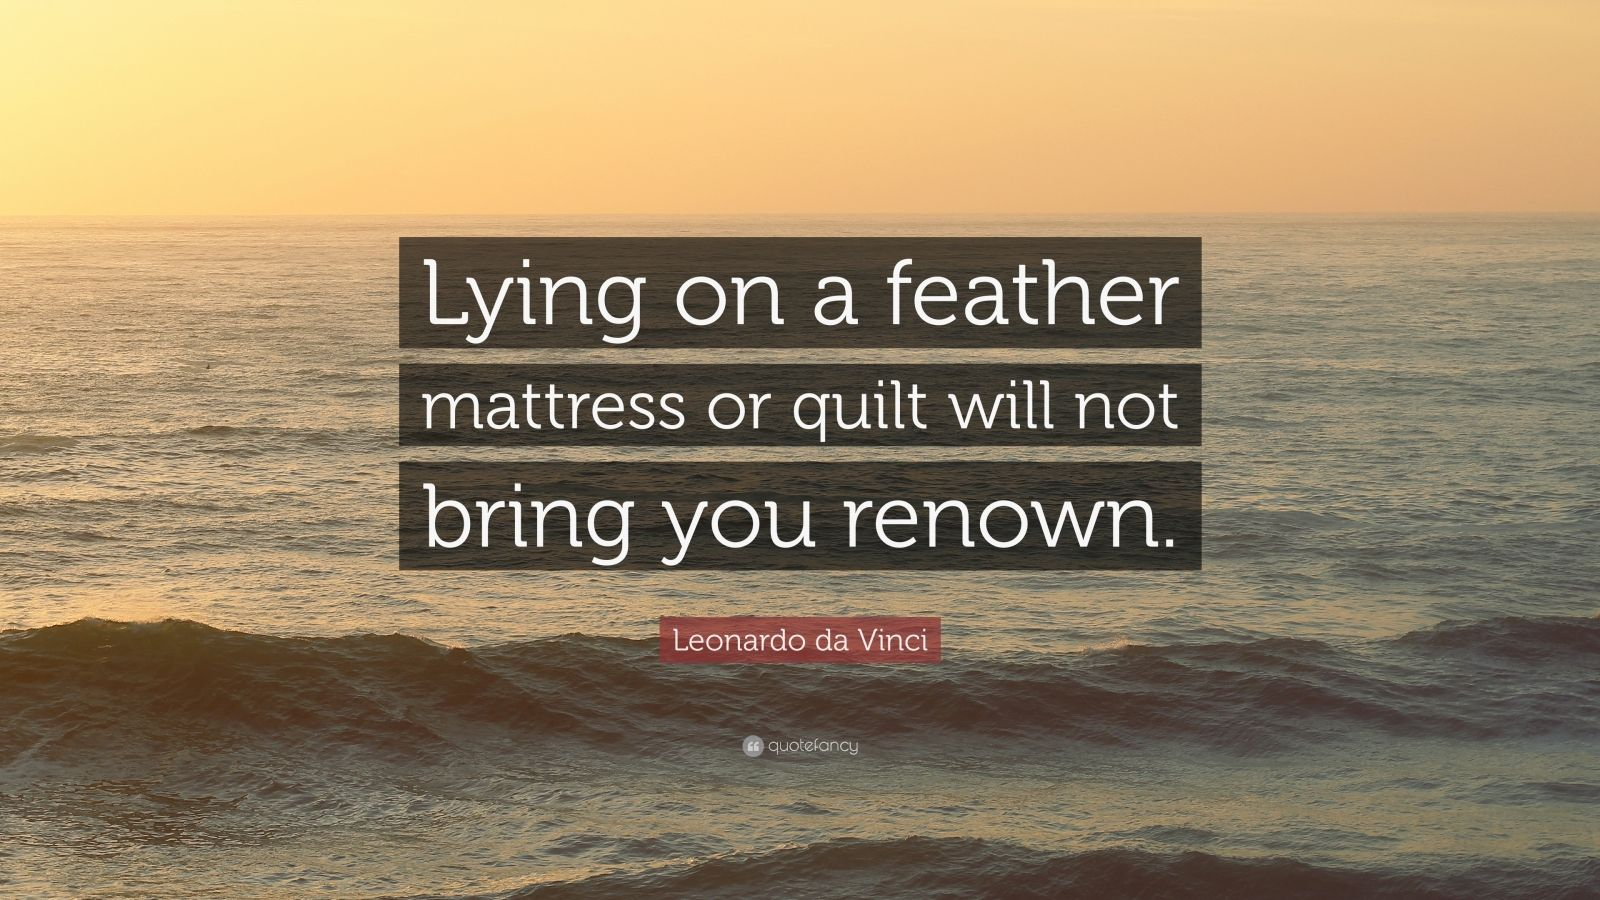 """Leonardo da Vinci Quote: """"Lying on a feather mattress or quilt will not bring you renown."""""""